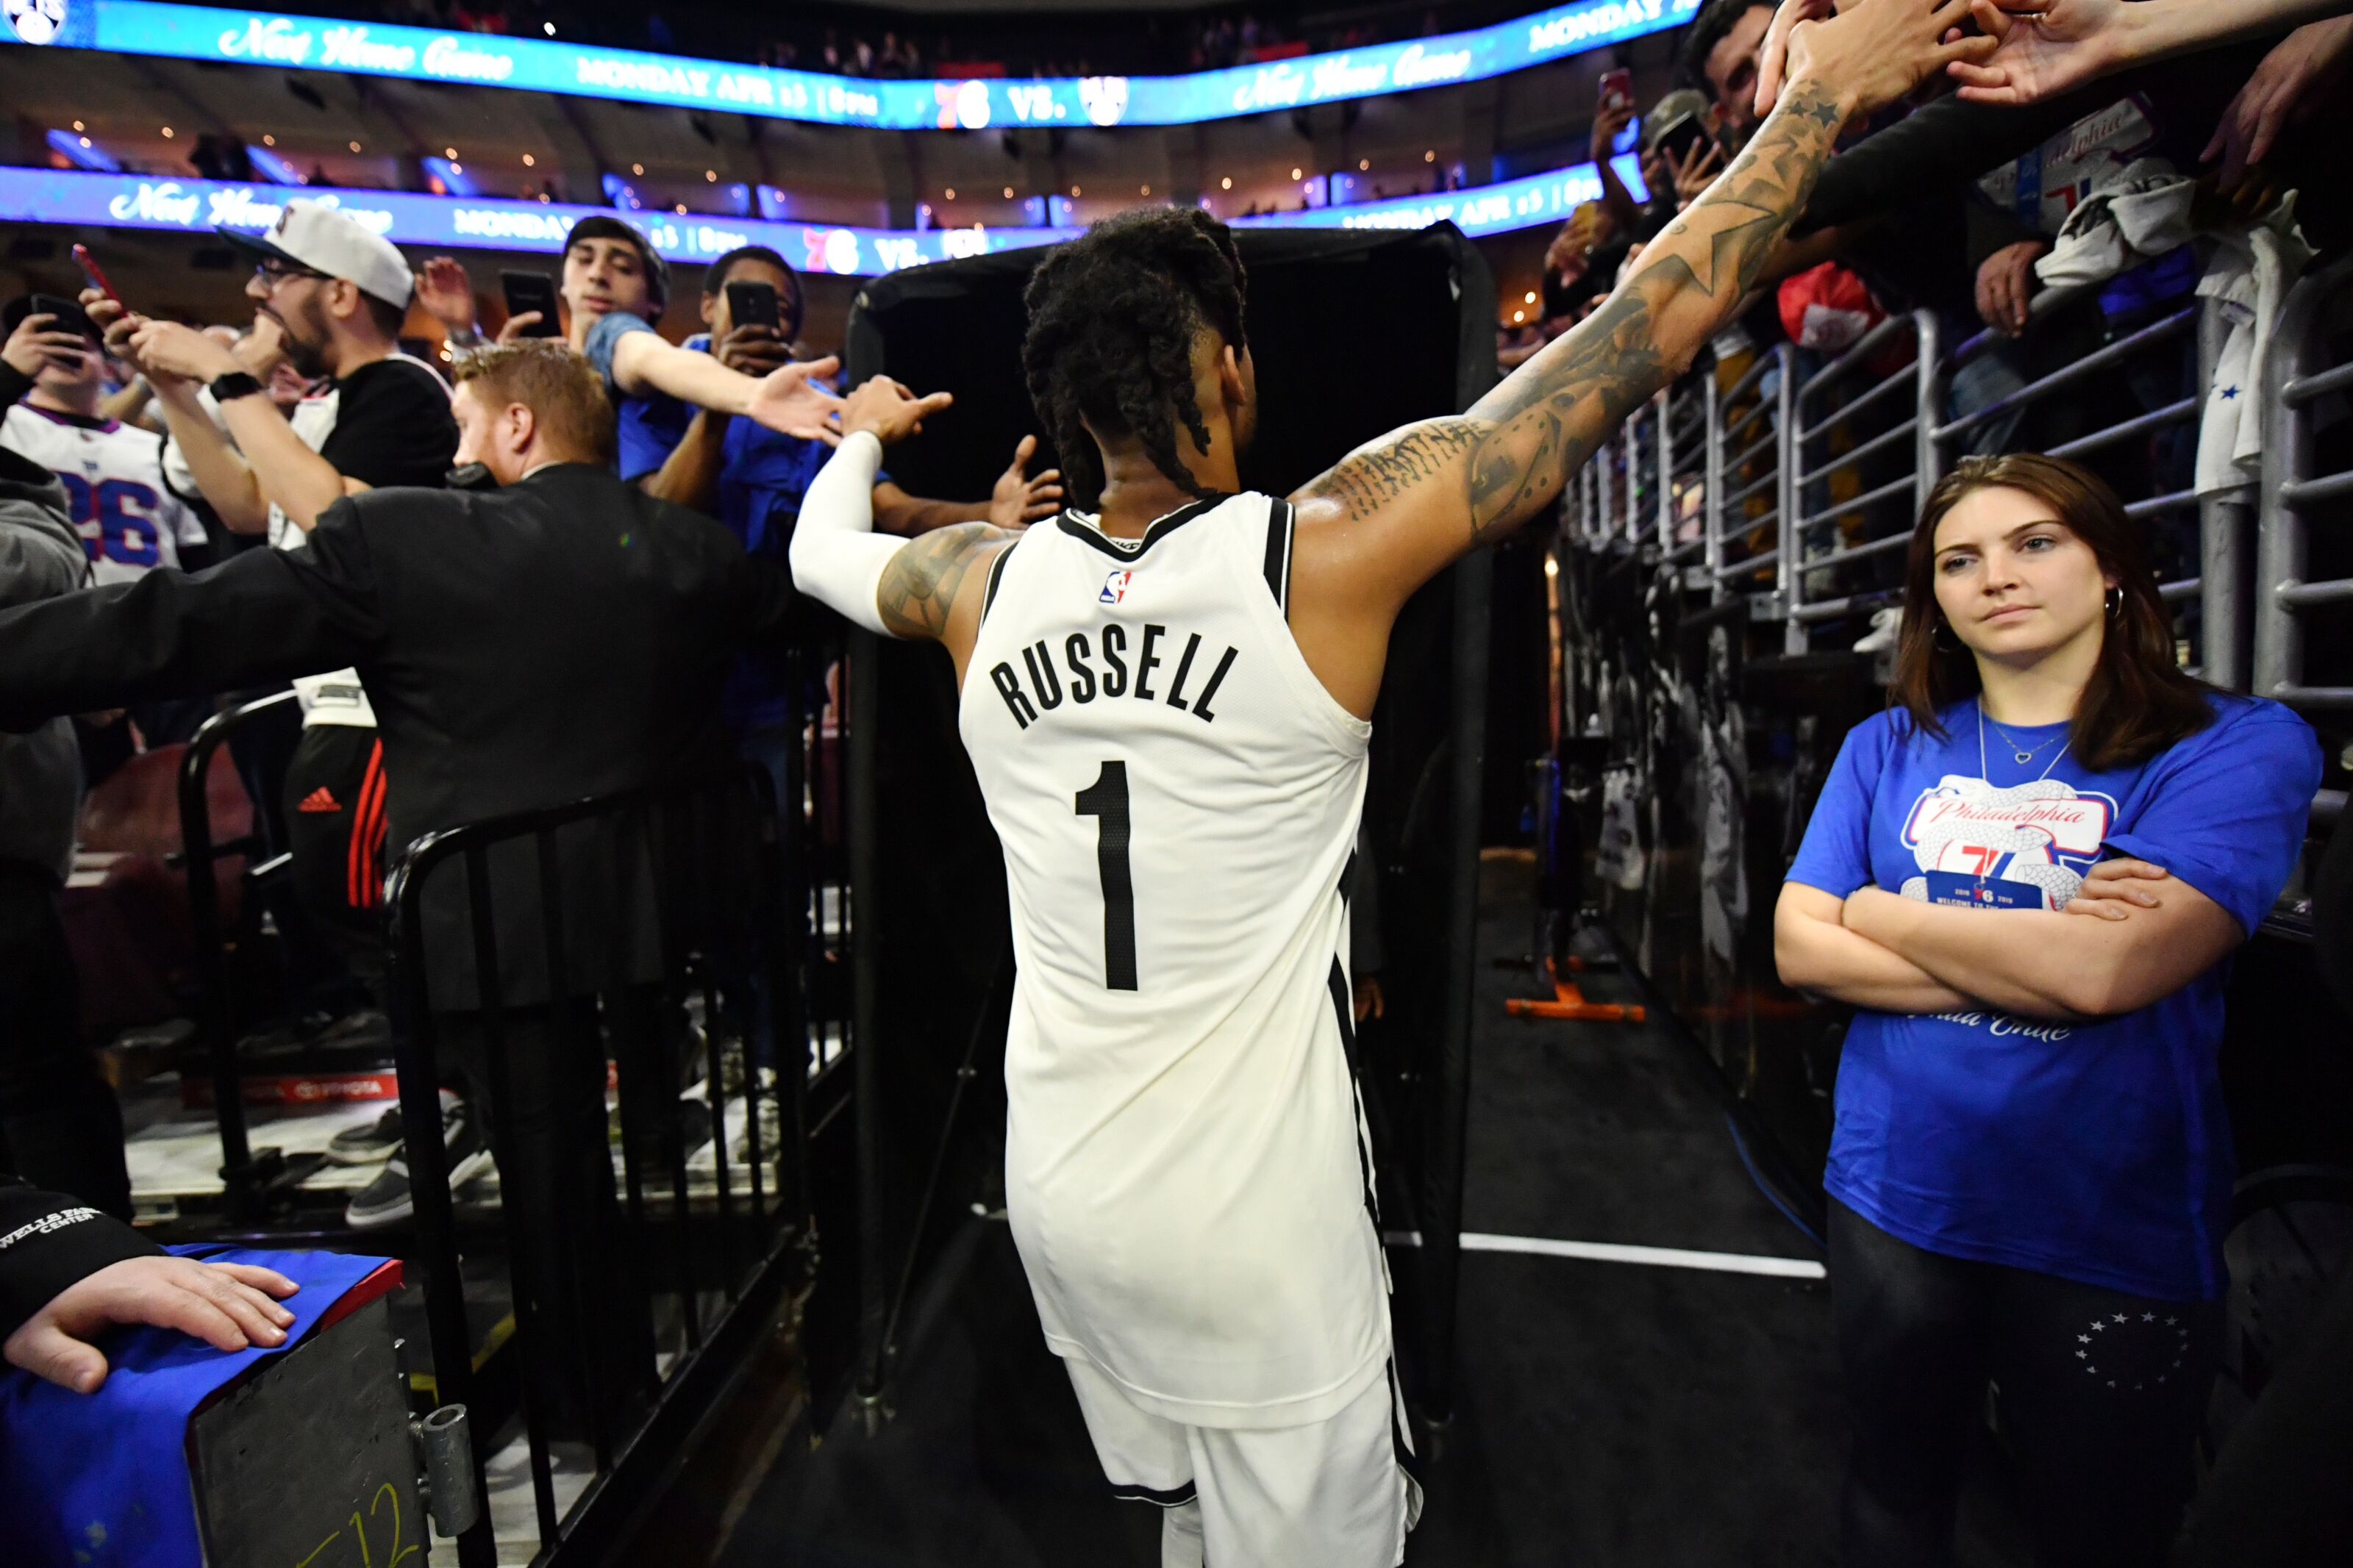 PHILADELPHIA, PA - APRIL 13: D'Angelo Russell #1 of the Brooklyn Nets exits the arena after a game against the Philadelphia 76ers during Game One of Round One of the 2019 NBA Playoffs on April 13, 2019 at the Wells Fargo Center in Philadelphia, Pennsylvania NOTE TO USER: User expressly acknowledges and agrees that, by downloading and/or using this Photograph, user is consenting to the terms and conditions of the Getty Images License Agreement. Mandatory Copyright Notice: Copyright 2019 NBAE (Photo by Jesse D. Garrabrant/NBAE via Getty Images)